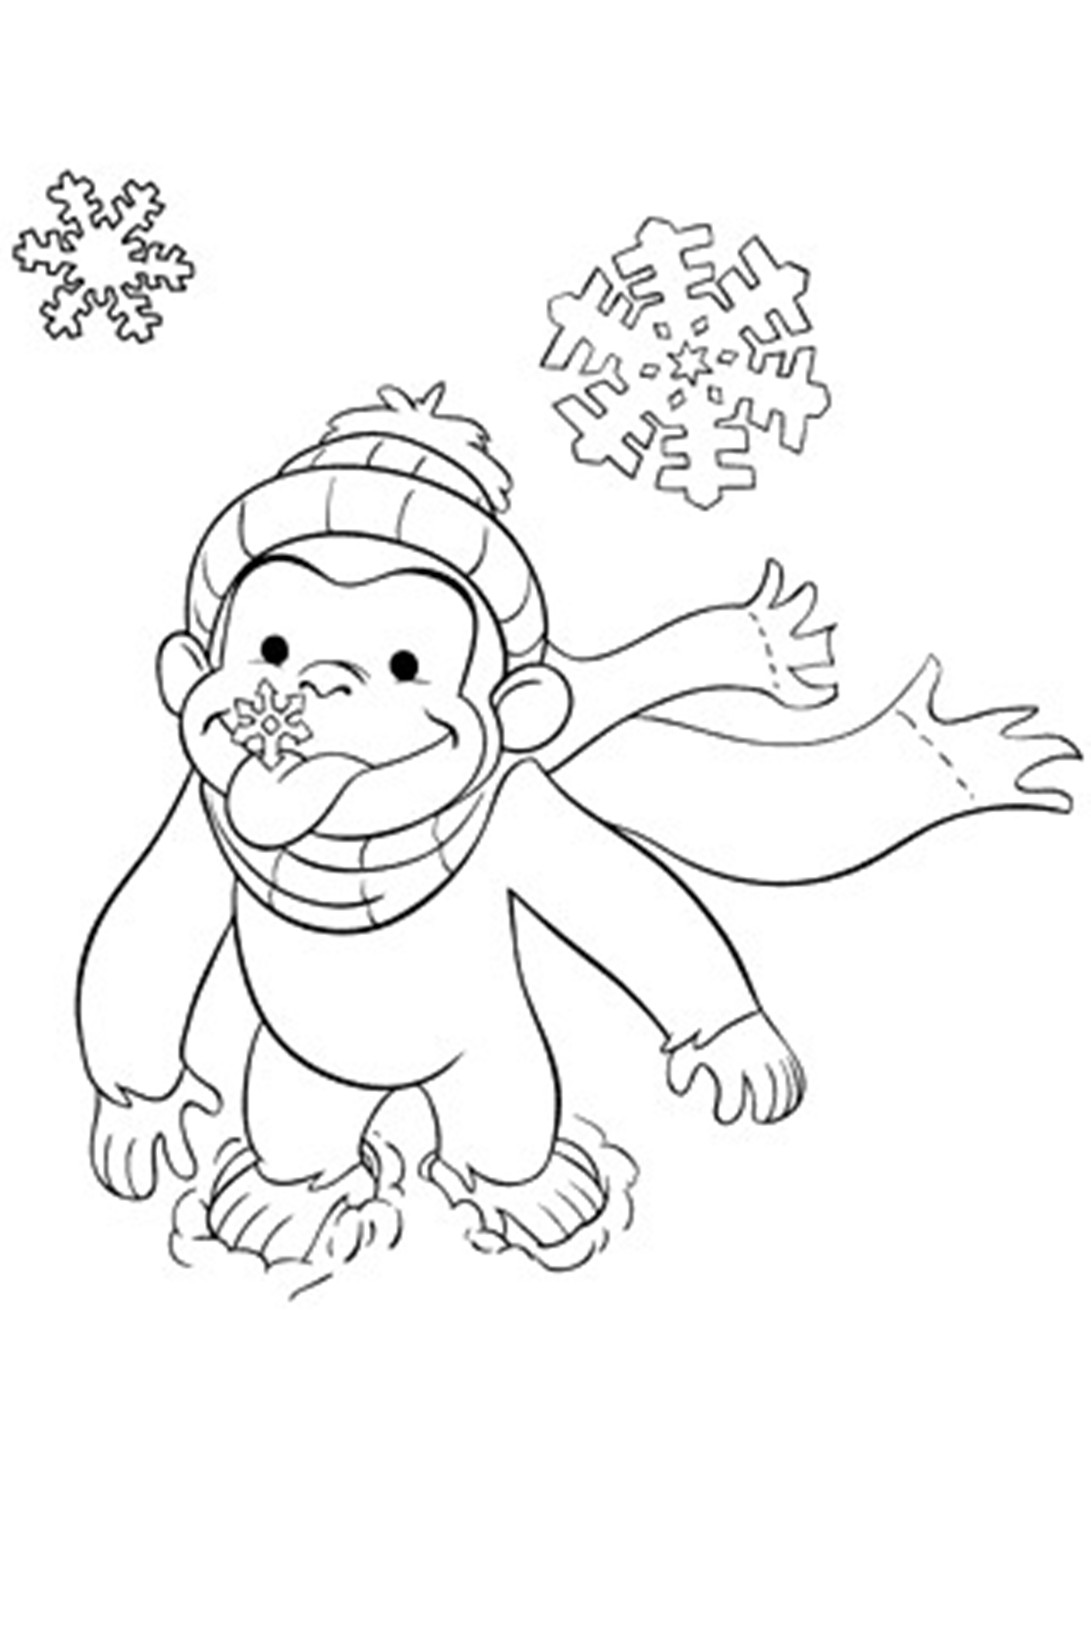 Adult Best Curious George Coloring Pages Printable Gallery Images beauty curious george coloring pages to download and print for free images